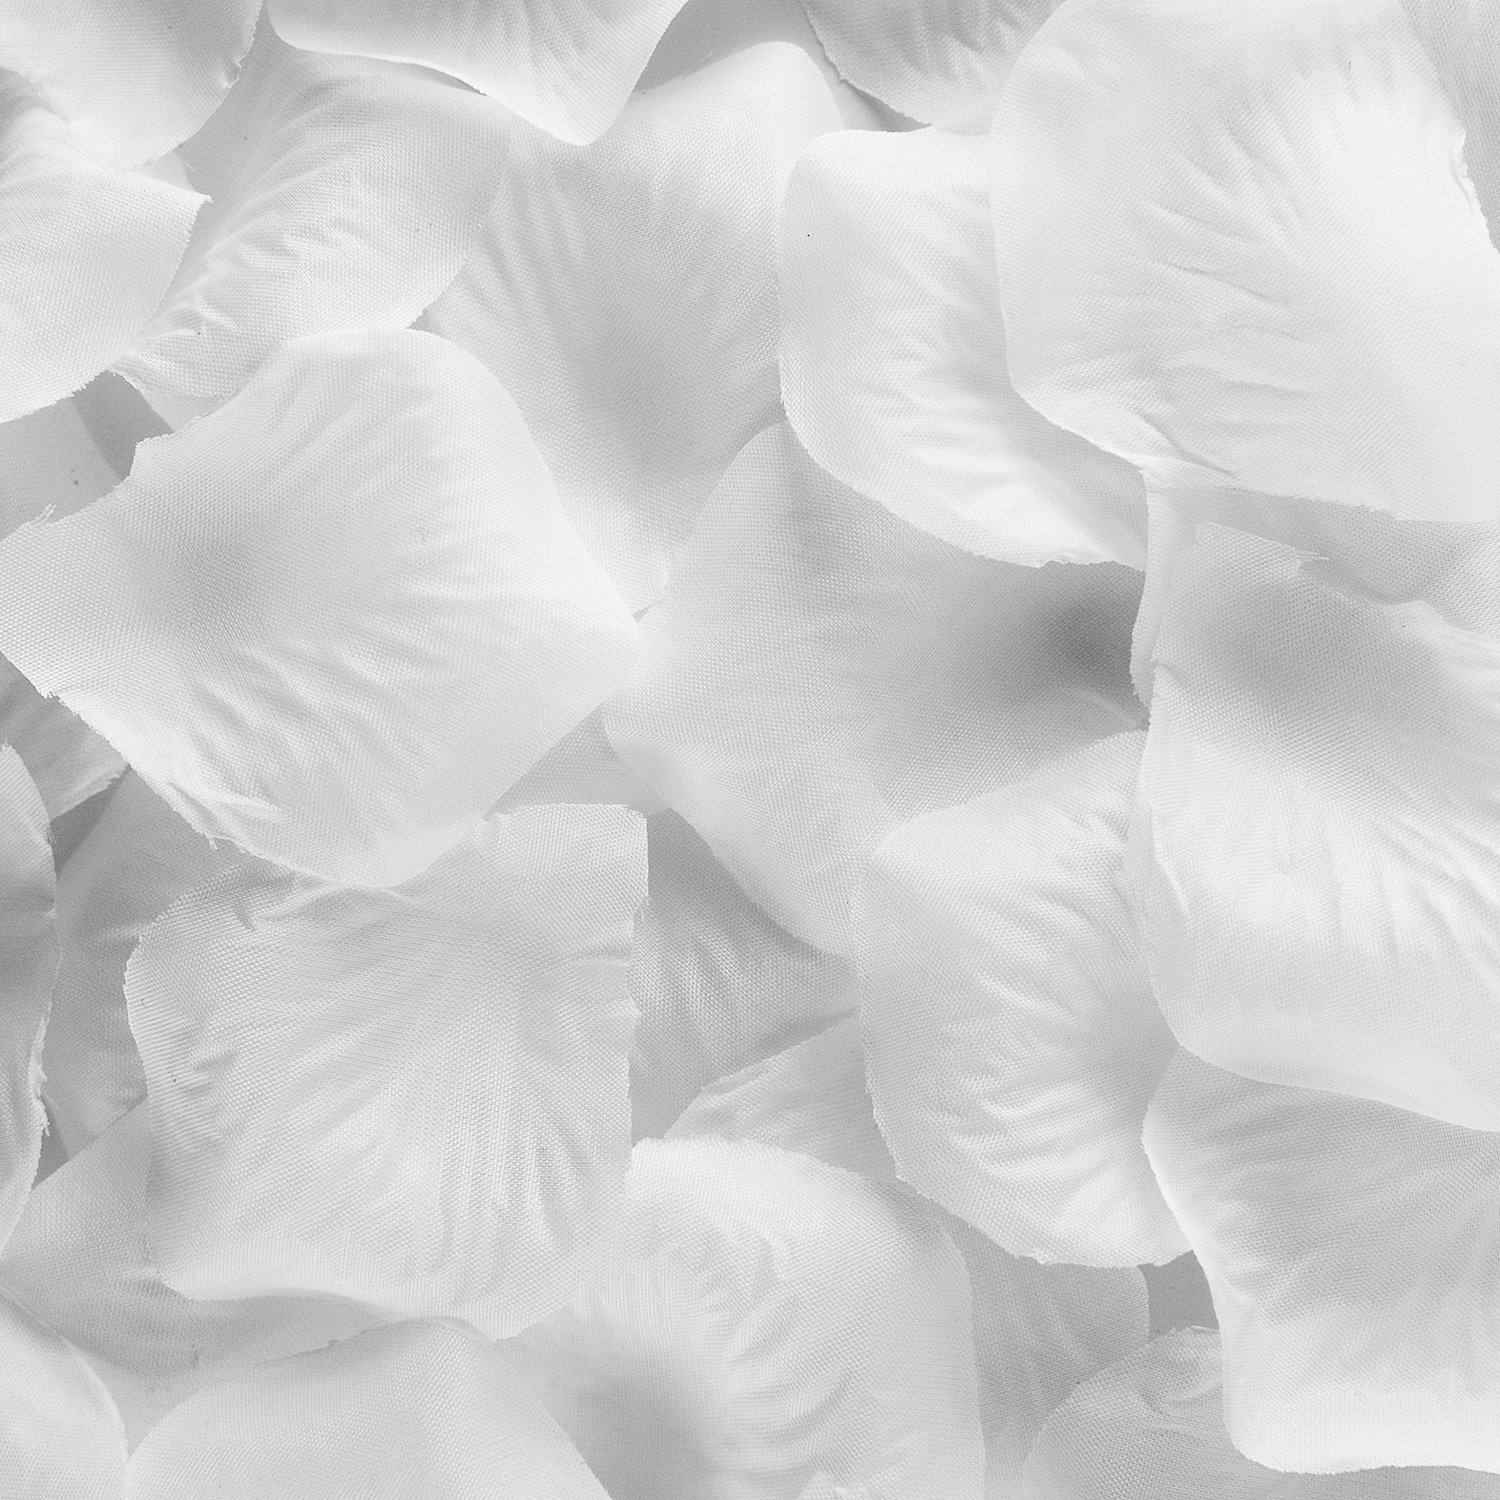 Rose Petals 300 Count Fabric Artificial Fabric Flower for Valentine Ceremony Wedding or Home Hotel Garden Bouquet Party Decorations (White)